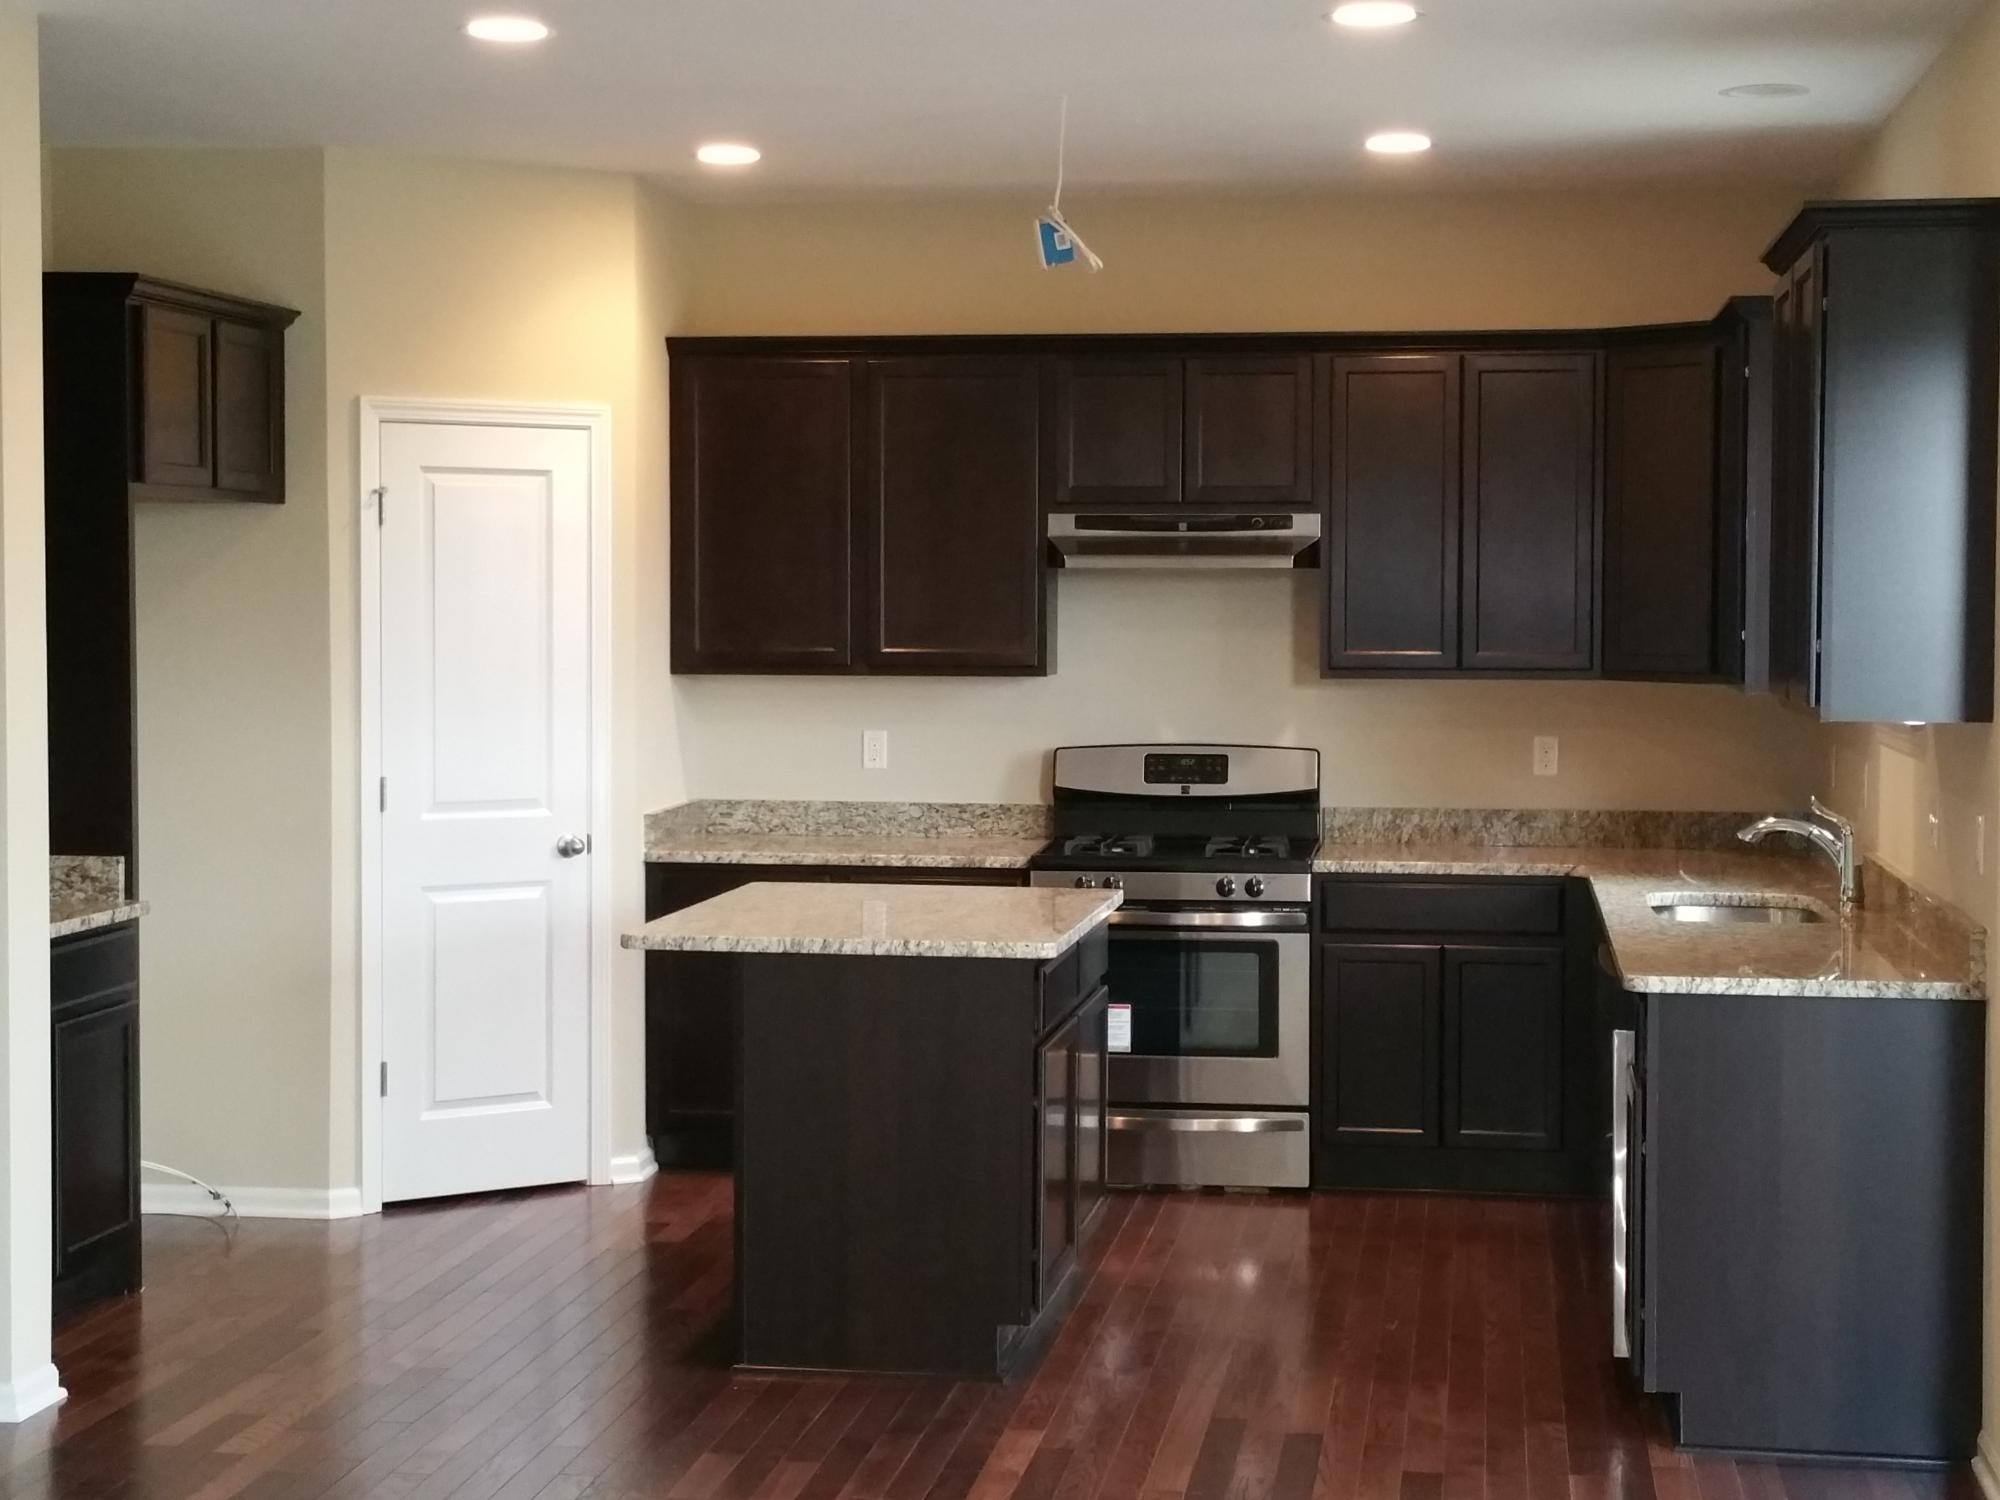 Kitchen featured in the Trudy By Evergreen Homes in Detroit, MI